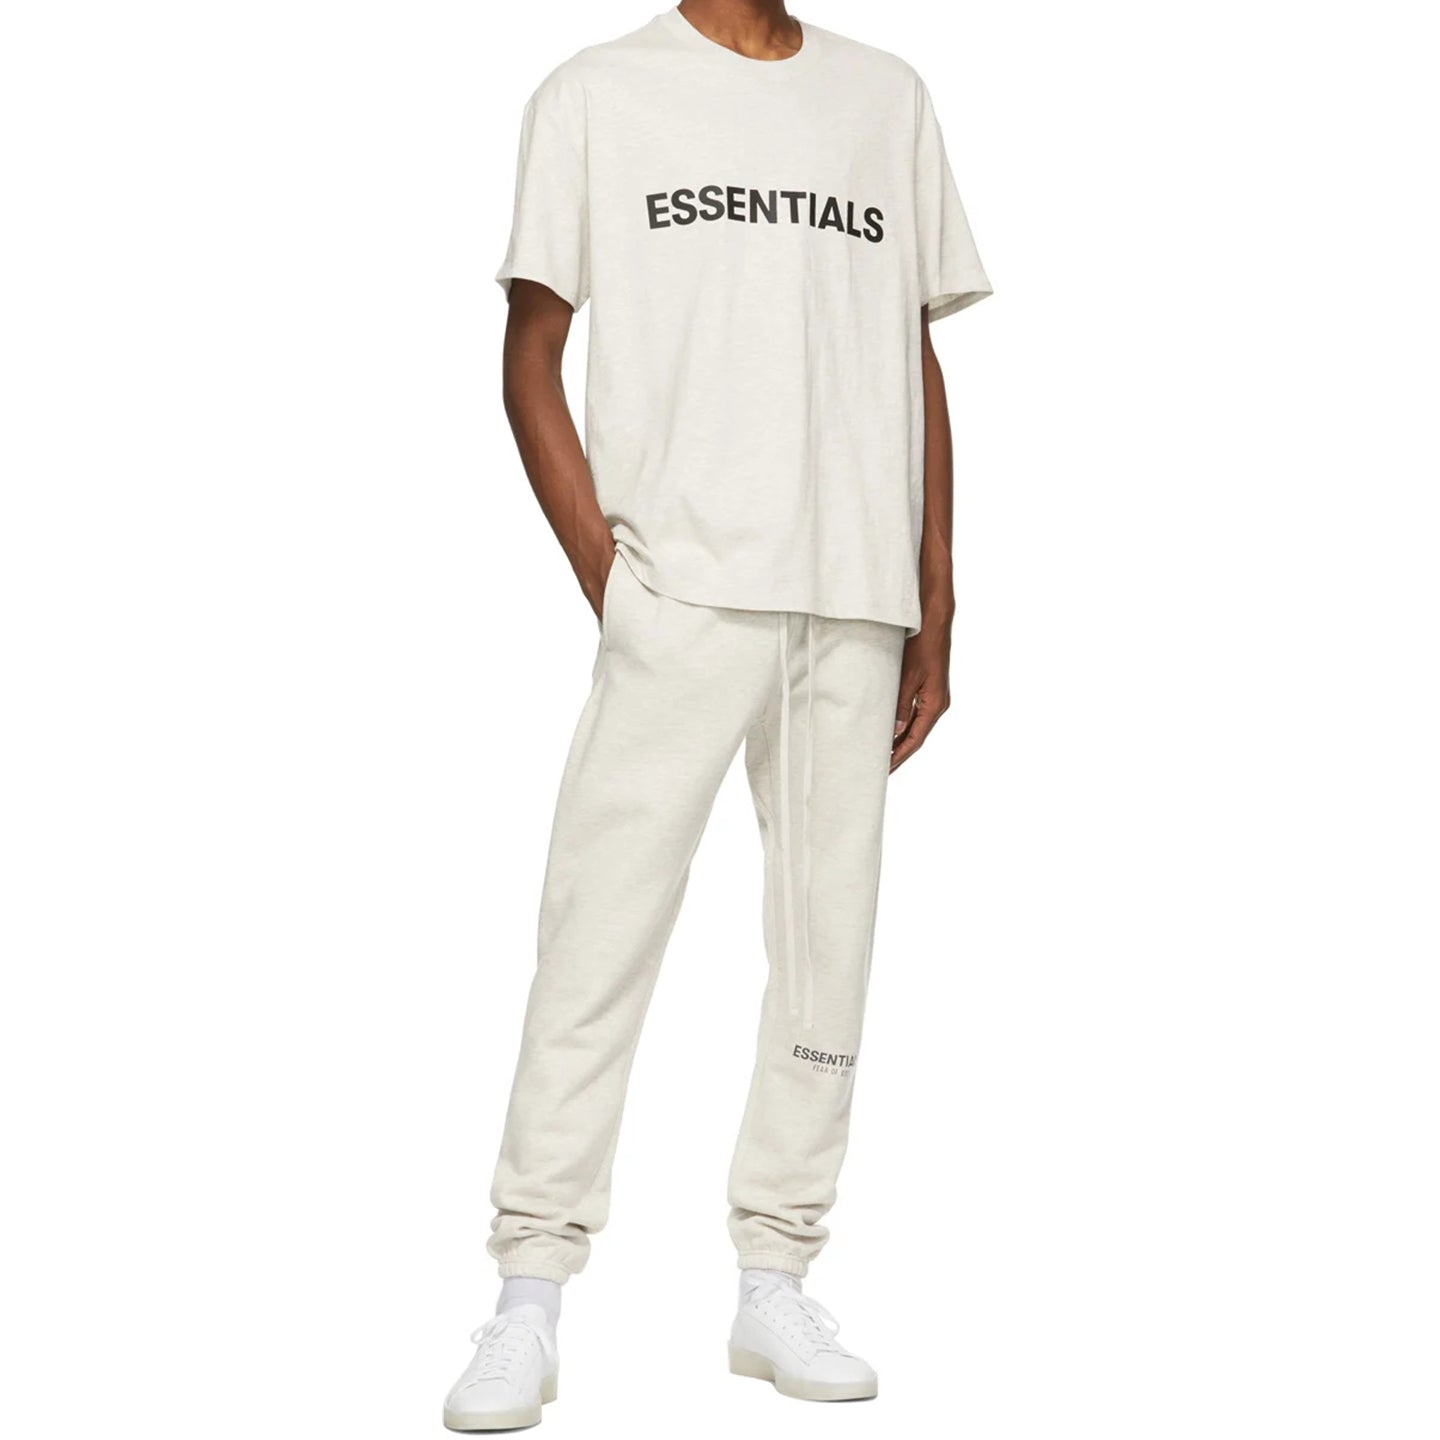 FEAR OF GOD ESSENTIALS SWEATPANT OATMEAL